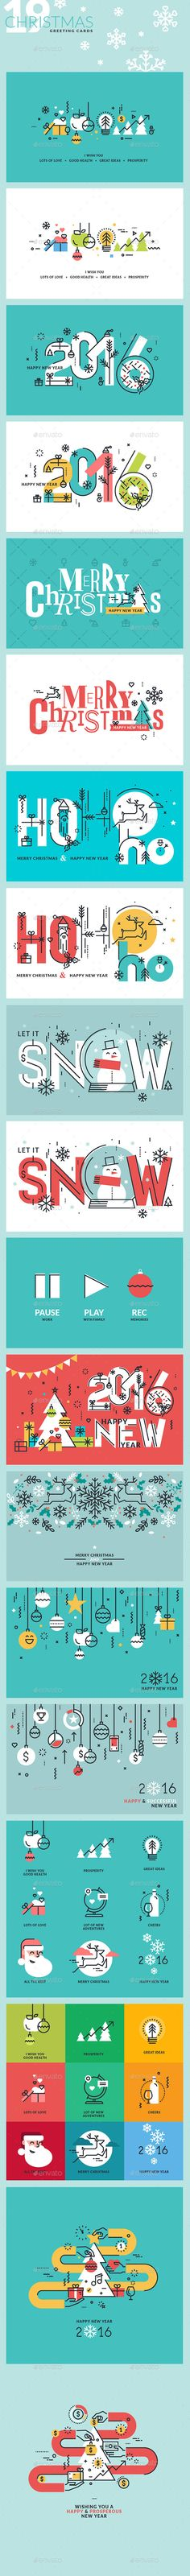 Buy Set of Flat Line Design 2018 Christmas Greeting Cards by PureSolution on GraphicRiver. Set of flat line design vector illustration Christmas and New Year's greeting cards. The set can be used for several .